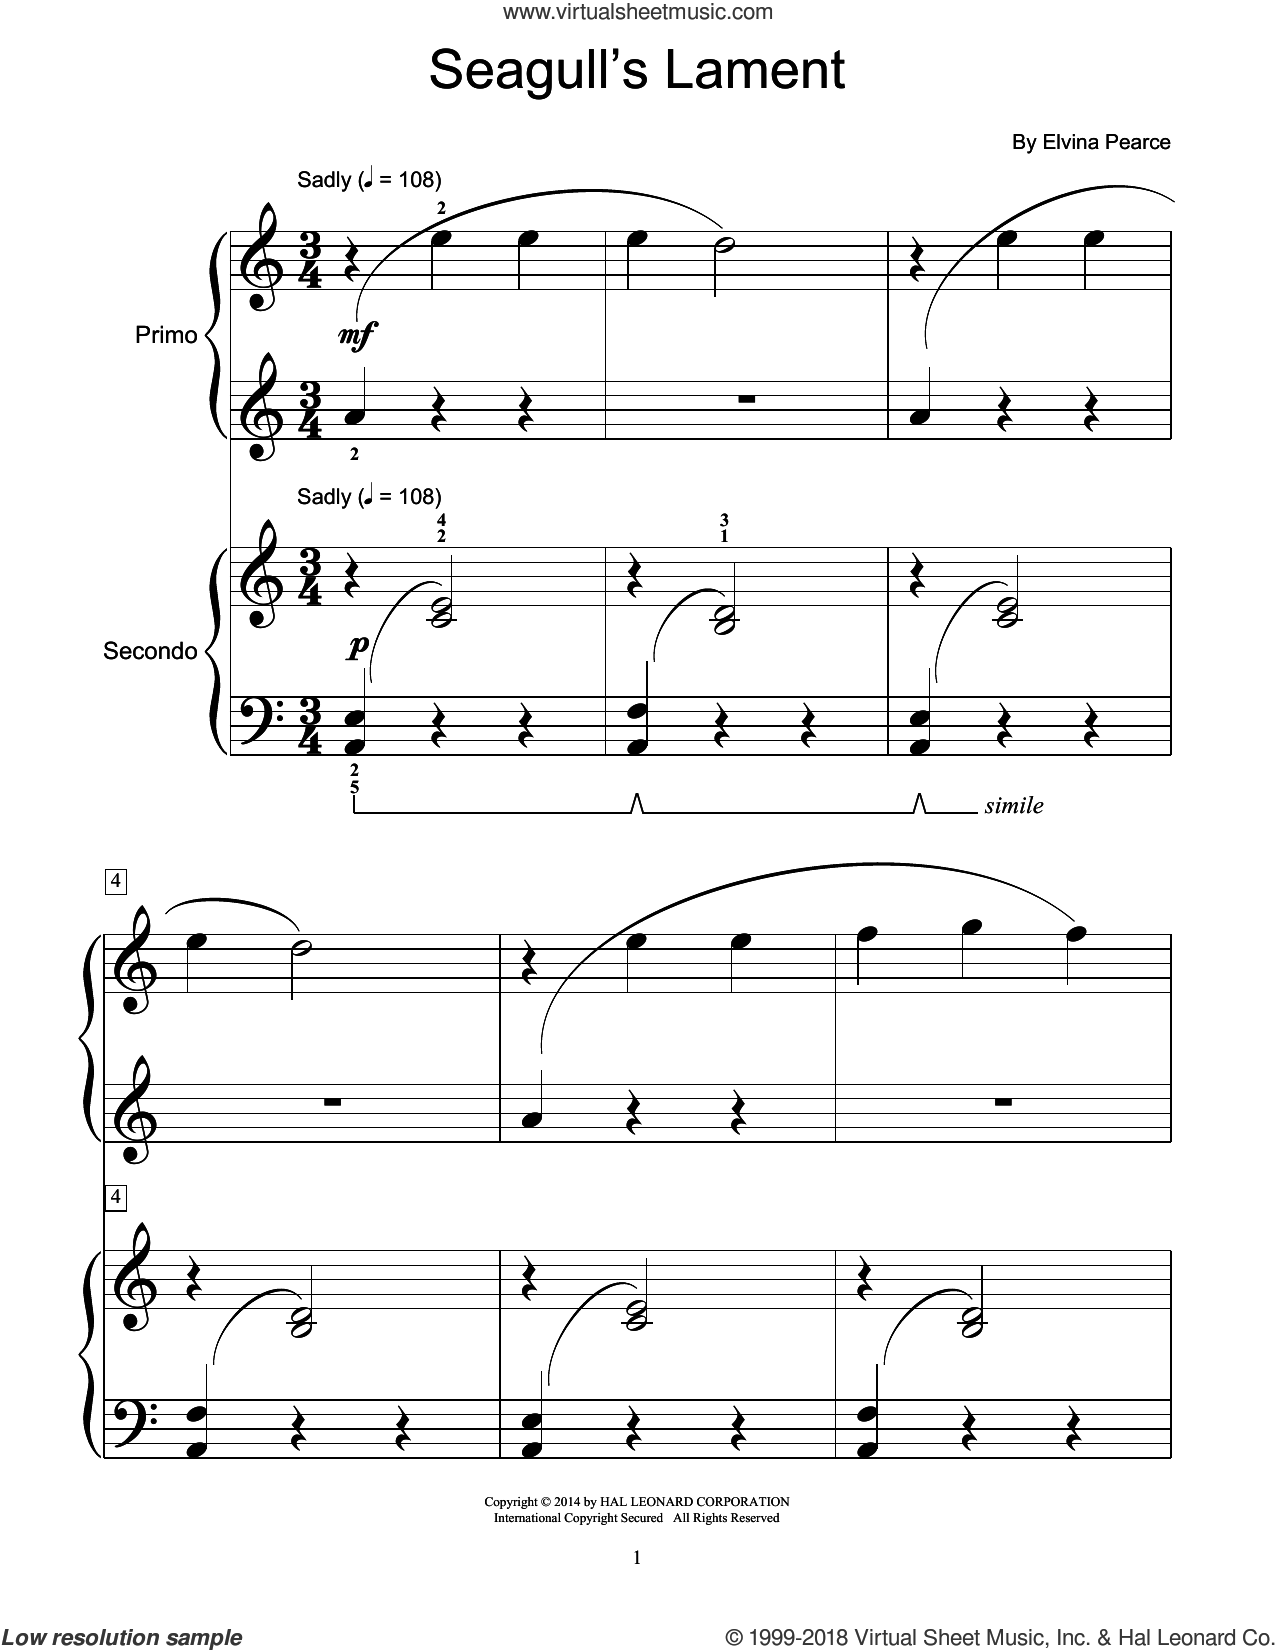 Seagull's Lament sheet music for piano four hands (duets) by Elvina Pearce. Score Image Preview.